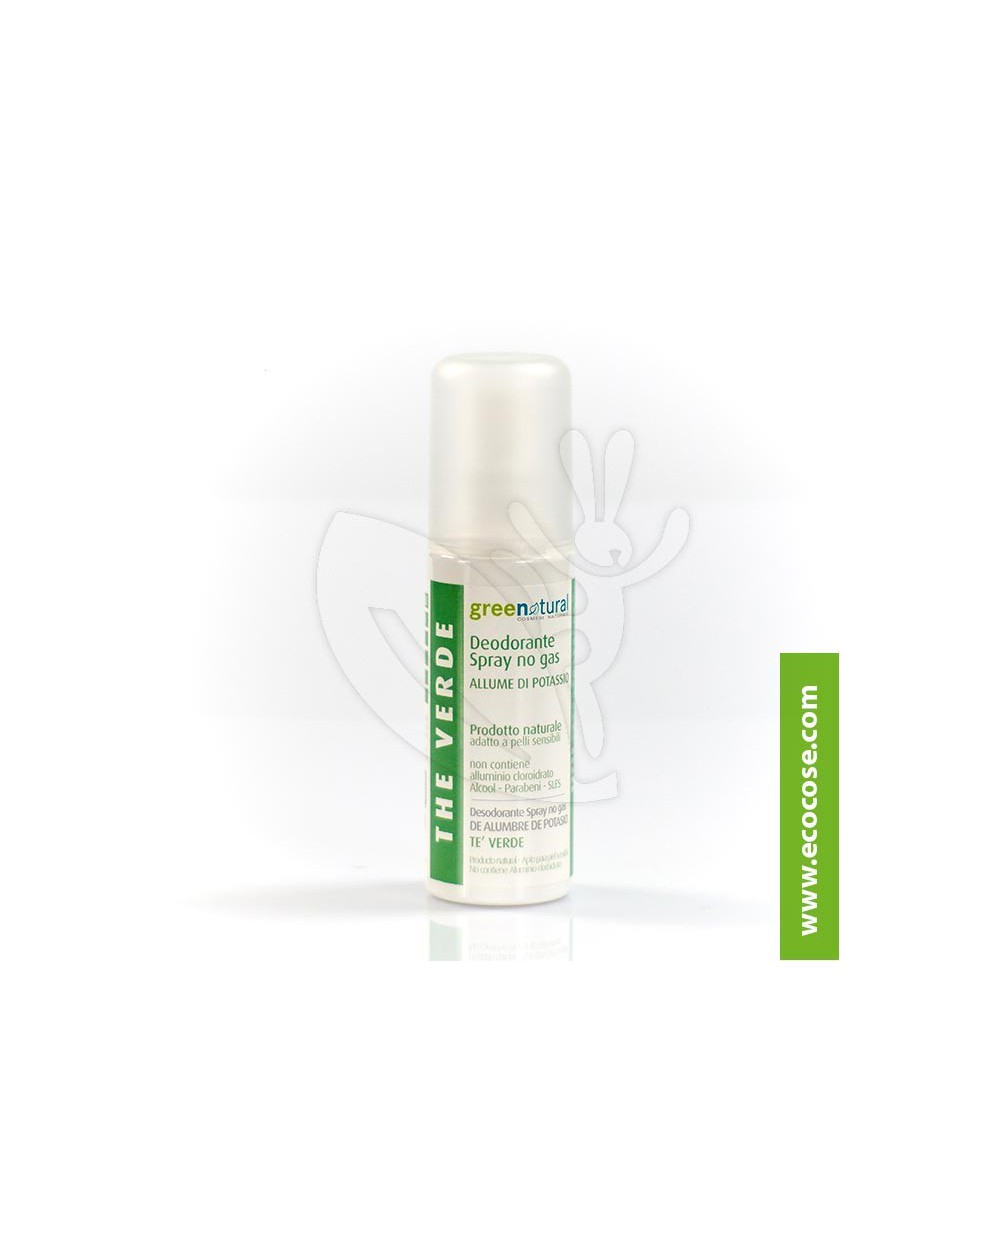 Greenatural - Deodorante Spray THE VERDE